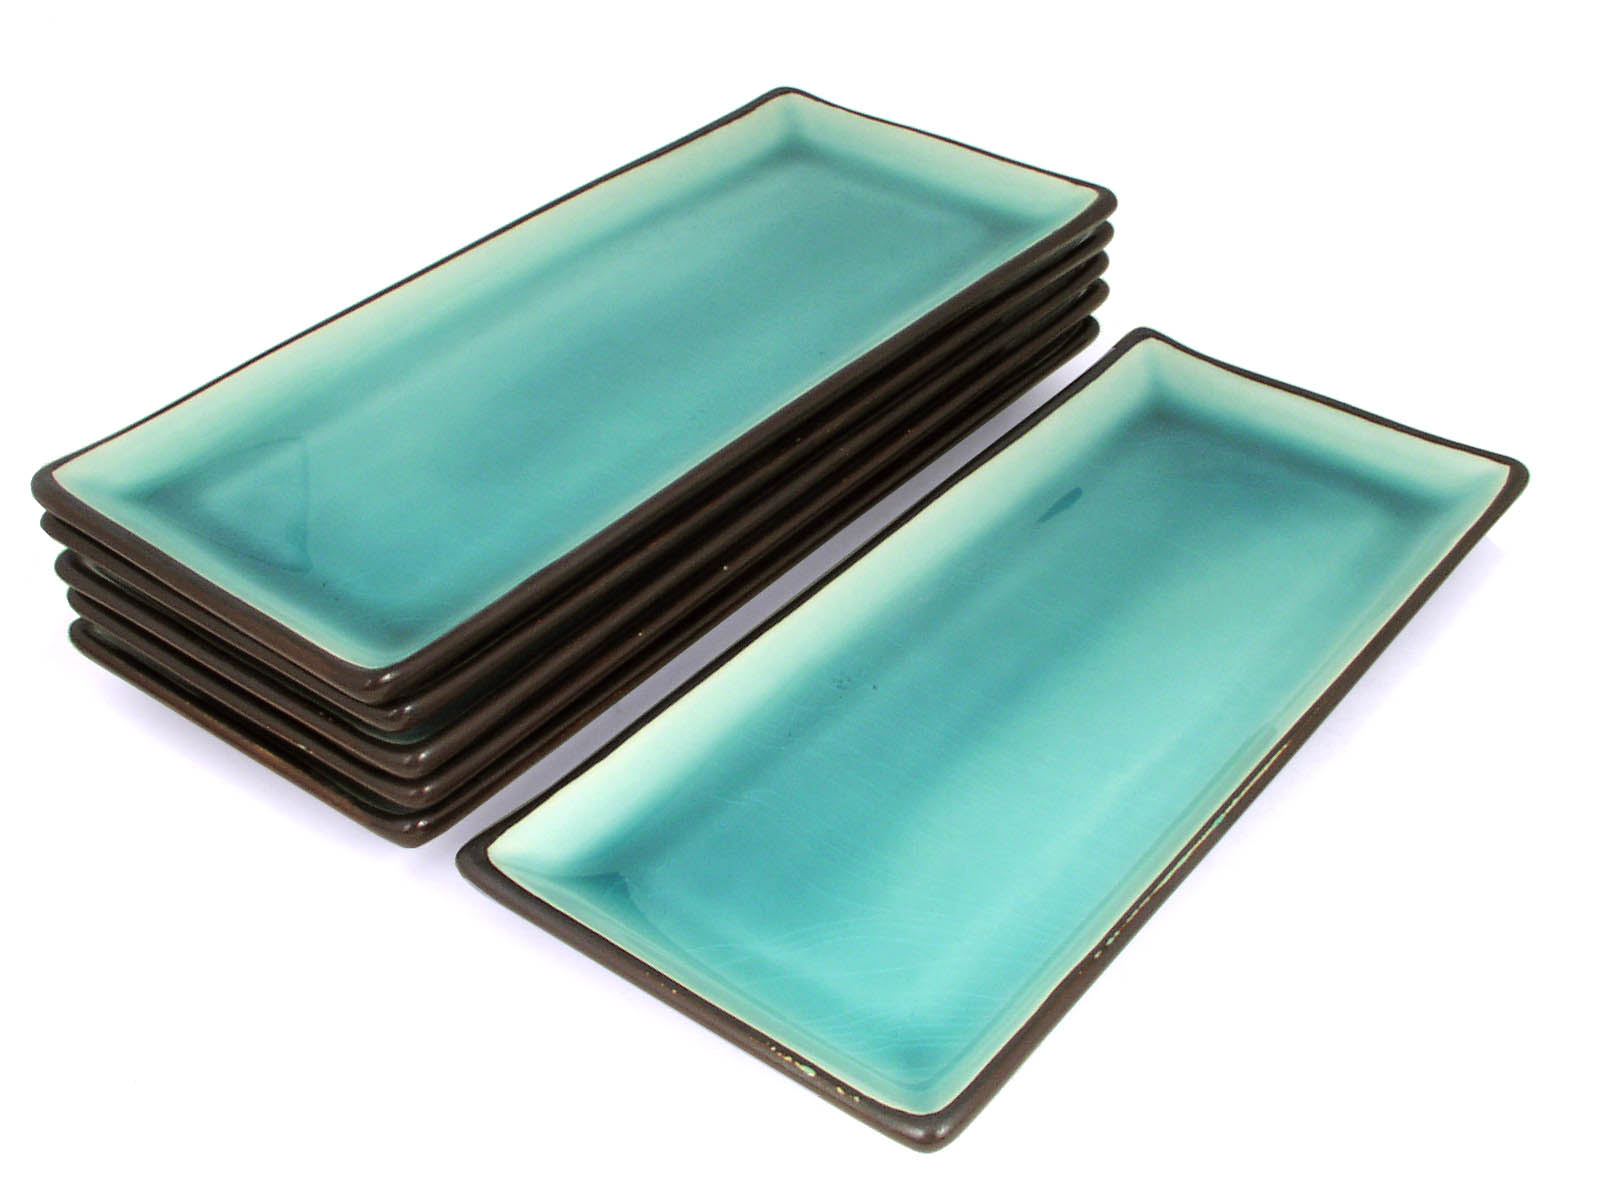 Canisters Kitchen Tropical Teal Rectangular Plate Set 5 Plates Only